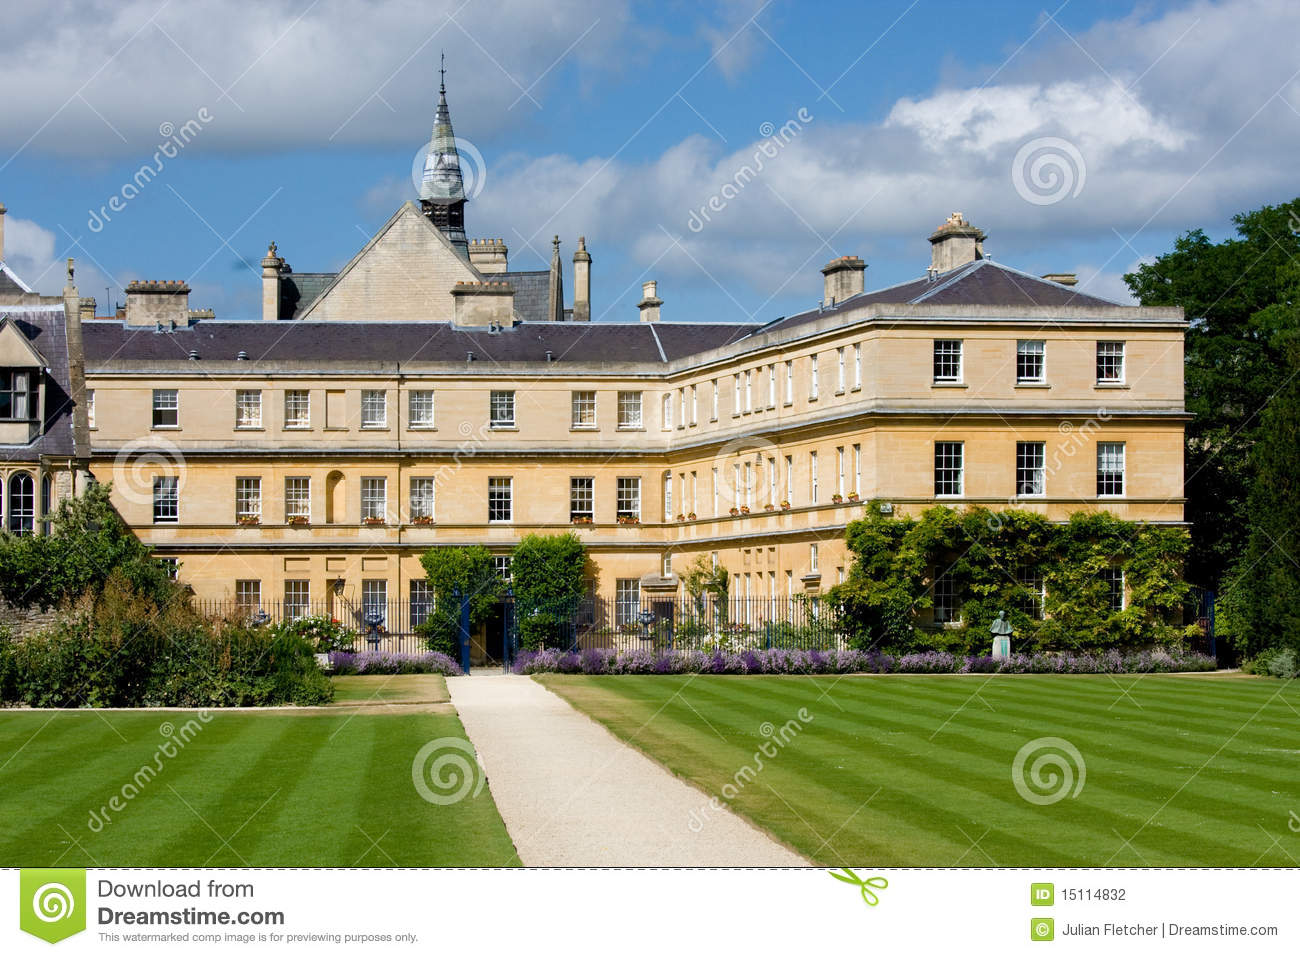 View of the rear garden of trinity college oxford university